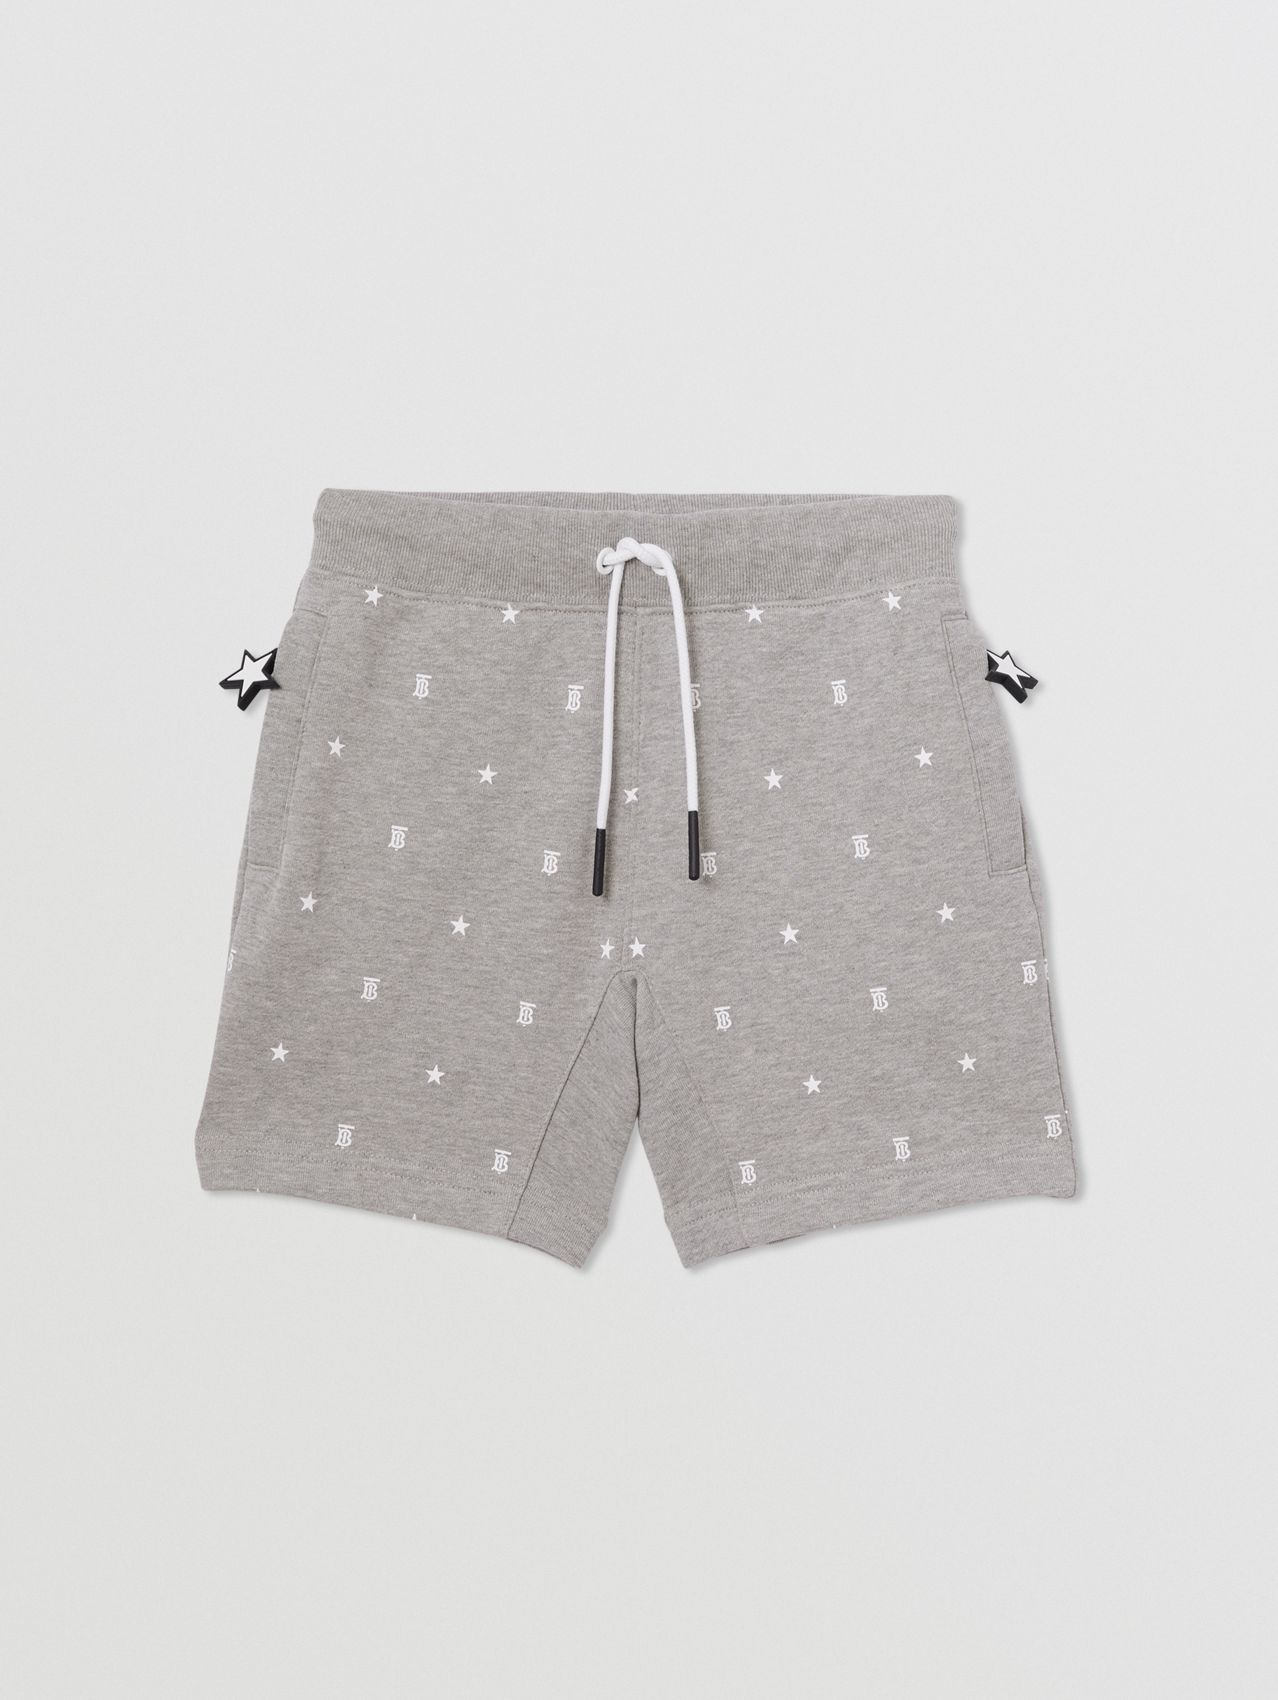 Star and Monogram Print Cotton Drawcord Shorts in Grey